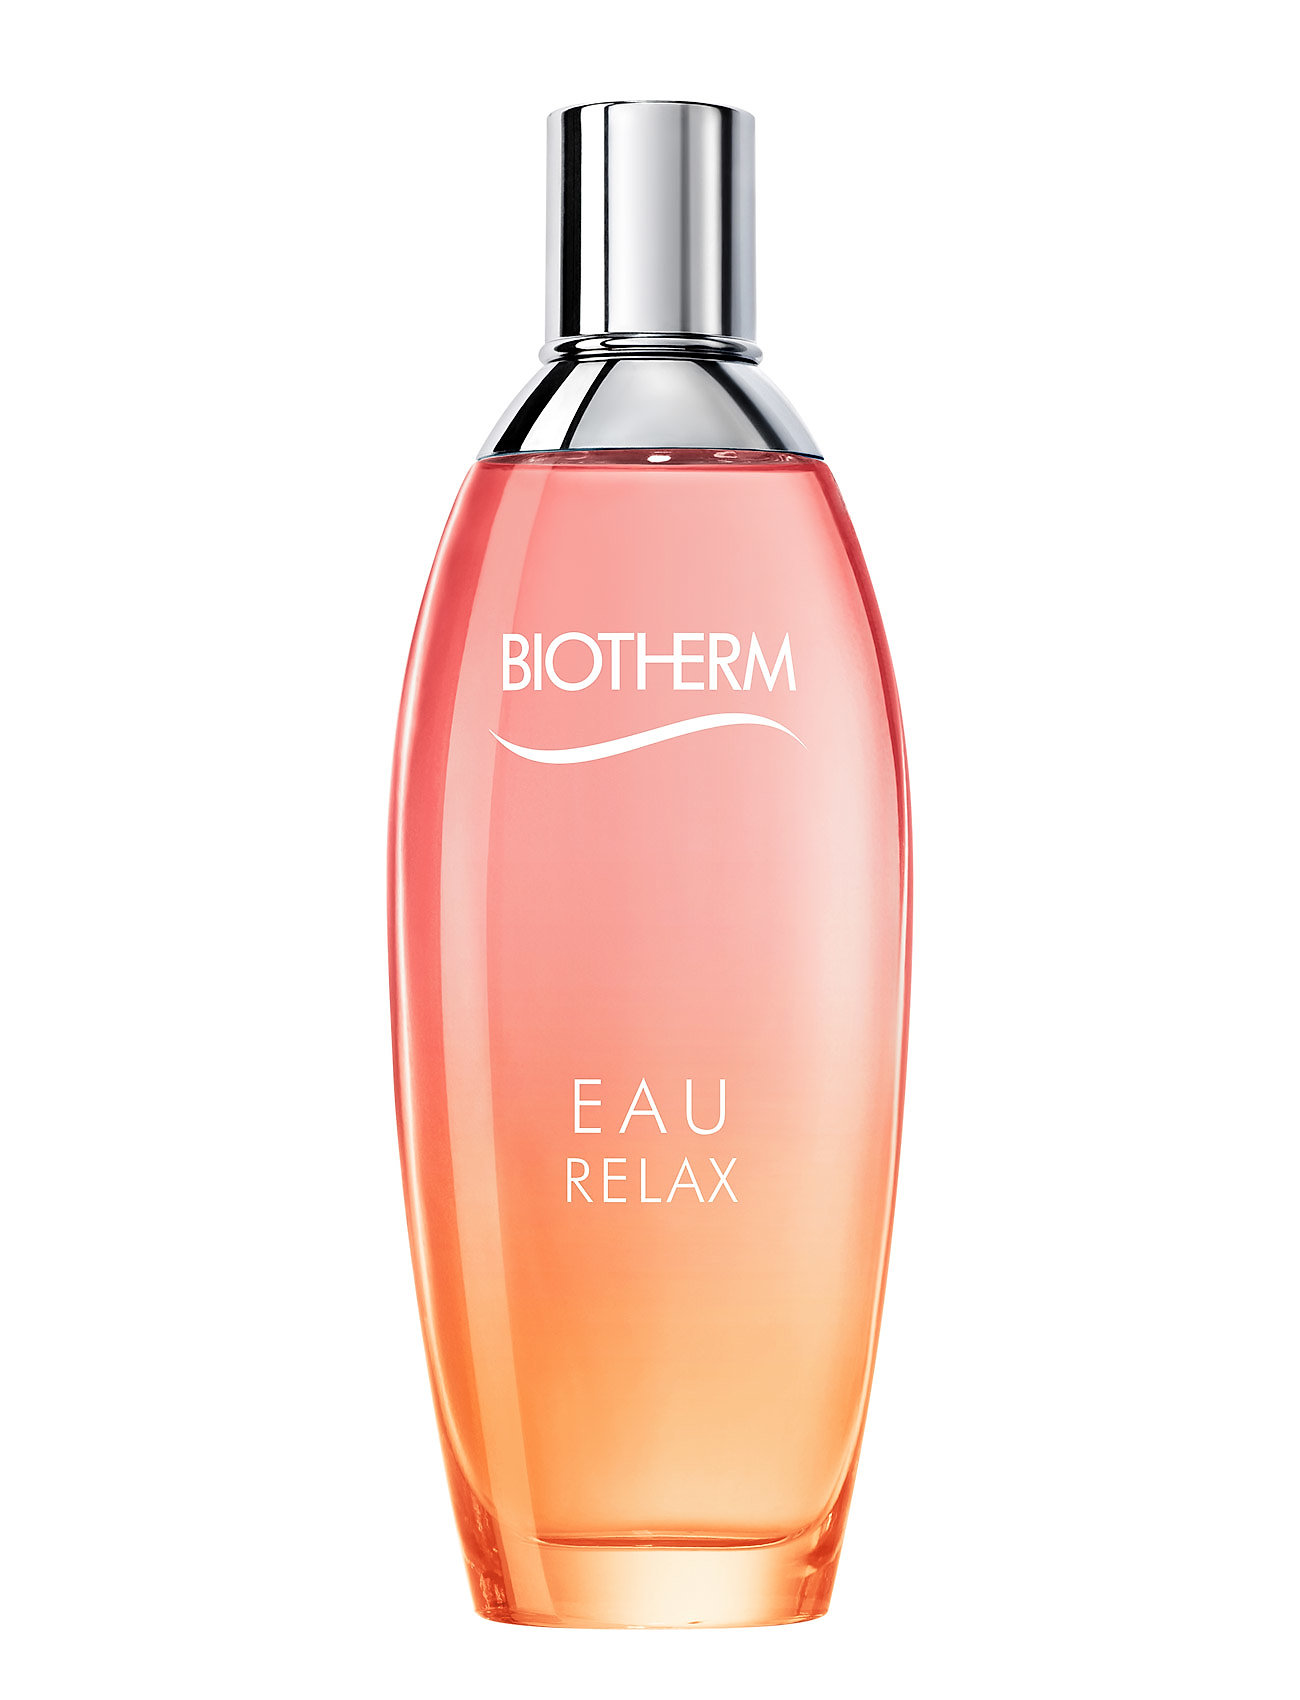 Eau relax eau de toilette 100 ml fra biotherm – summer essentials women (beauty)